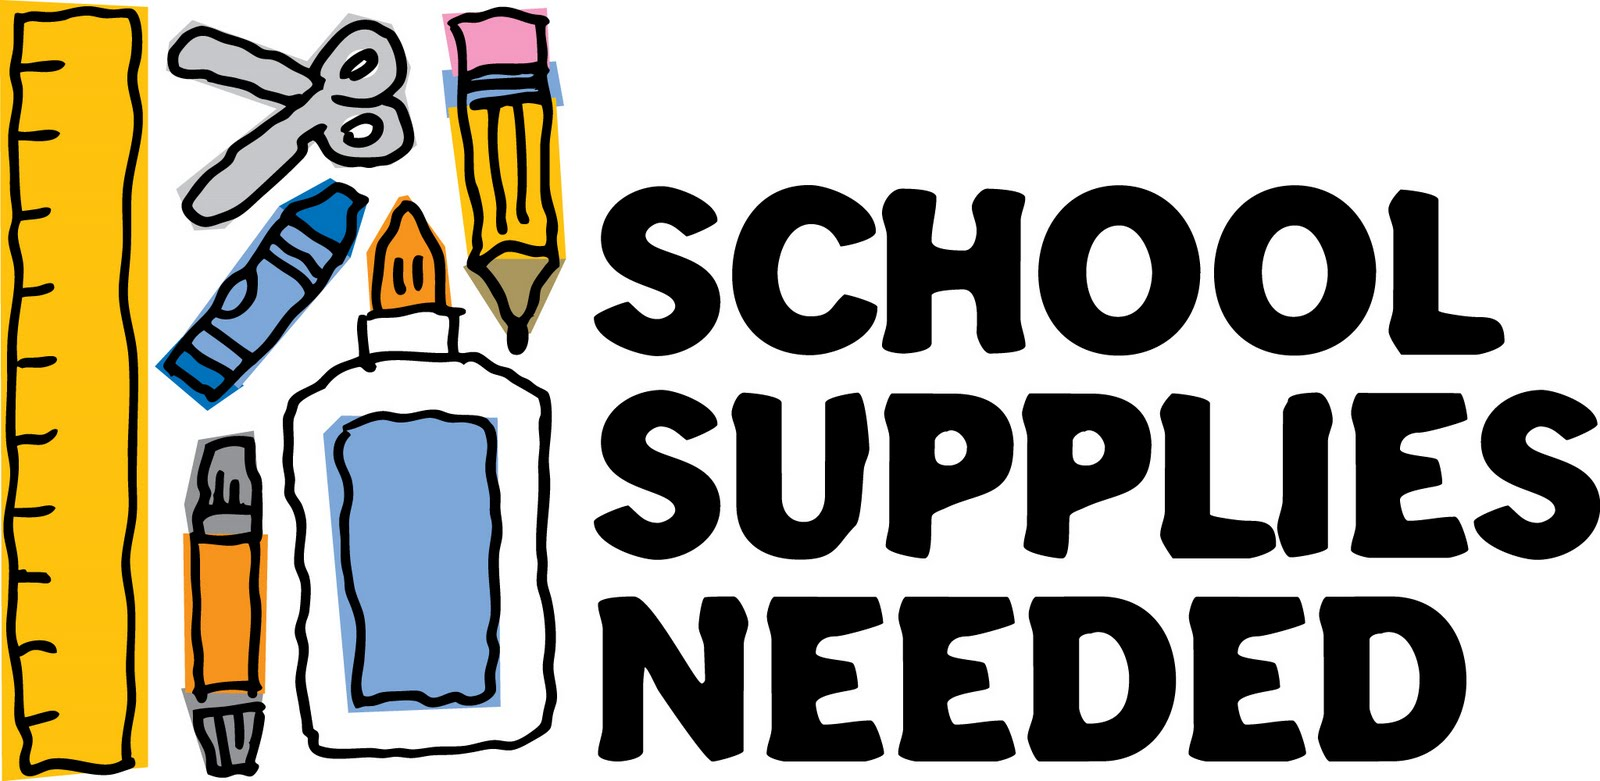 BUMC is collecting school supplies for Arthur Circle Elementary School where our Kids Hope volunteers mentor students throughout the school year. In addition, we are also collecting new uniforms and lightly used uniforms that some of your children may have outgrown. We can also use belts for boys, and new underwear packs for girls & boys. Shirts can be solid white, red or blue polos.  Basic school supply needs are listed below.  Monetary donations will also be accepted. Please note any monetary gifts with School Supplies. Supplies may be dropped off at the Welcome Center or placed in the bin in the office reception.  Arthur Circle School Supplies Needed!  Fiskar scissors (small, blunt and sharp tips) Washable Crayola markers, primary colors Large boxes of Kleenex #2 pencils (no mechanical) 4 oz. bottles of Elmer's glue (no gel) Small and large glue sticks 24 count regular size crayons 8 count large crayons Packages of colored construction paper (no pads) Pencil top erasers Packages of wide-ruled loose leaf paper Colored pencils Zipper pouches for supplies Pencil sharpeners Dry erase markers – any color Paper towels 12 inch rulers Index card  If you have any questions feel free to contact Jan Bookter at janbook@aol.com or 318- 632-5874.